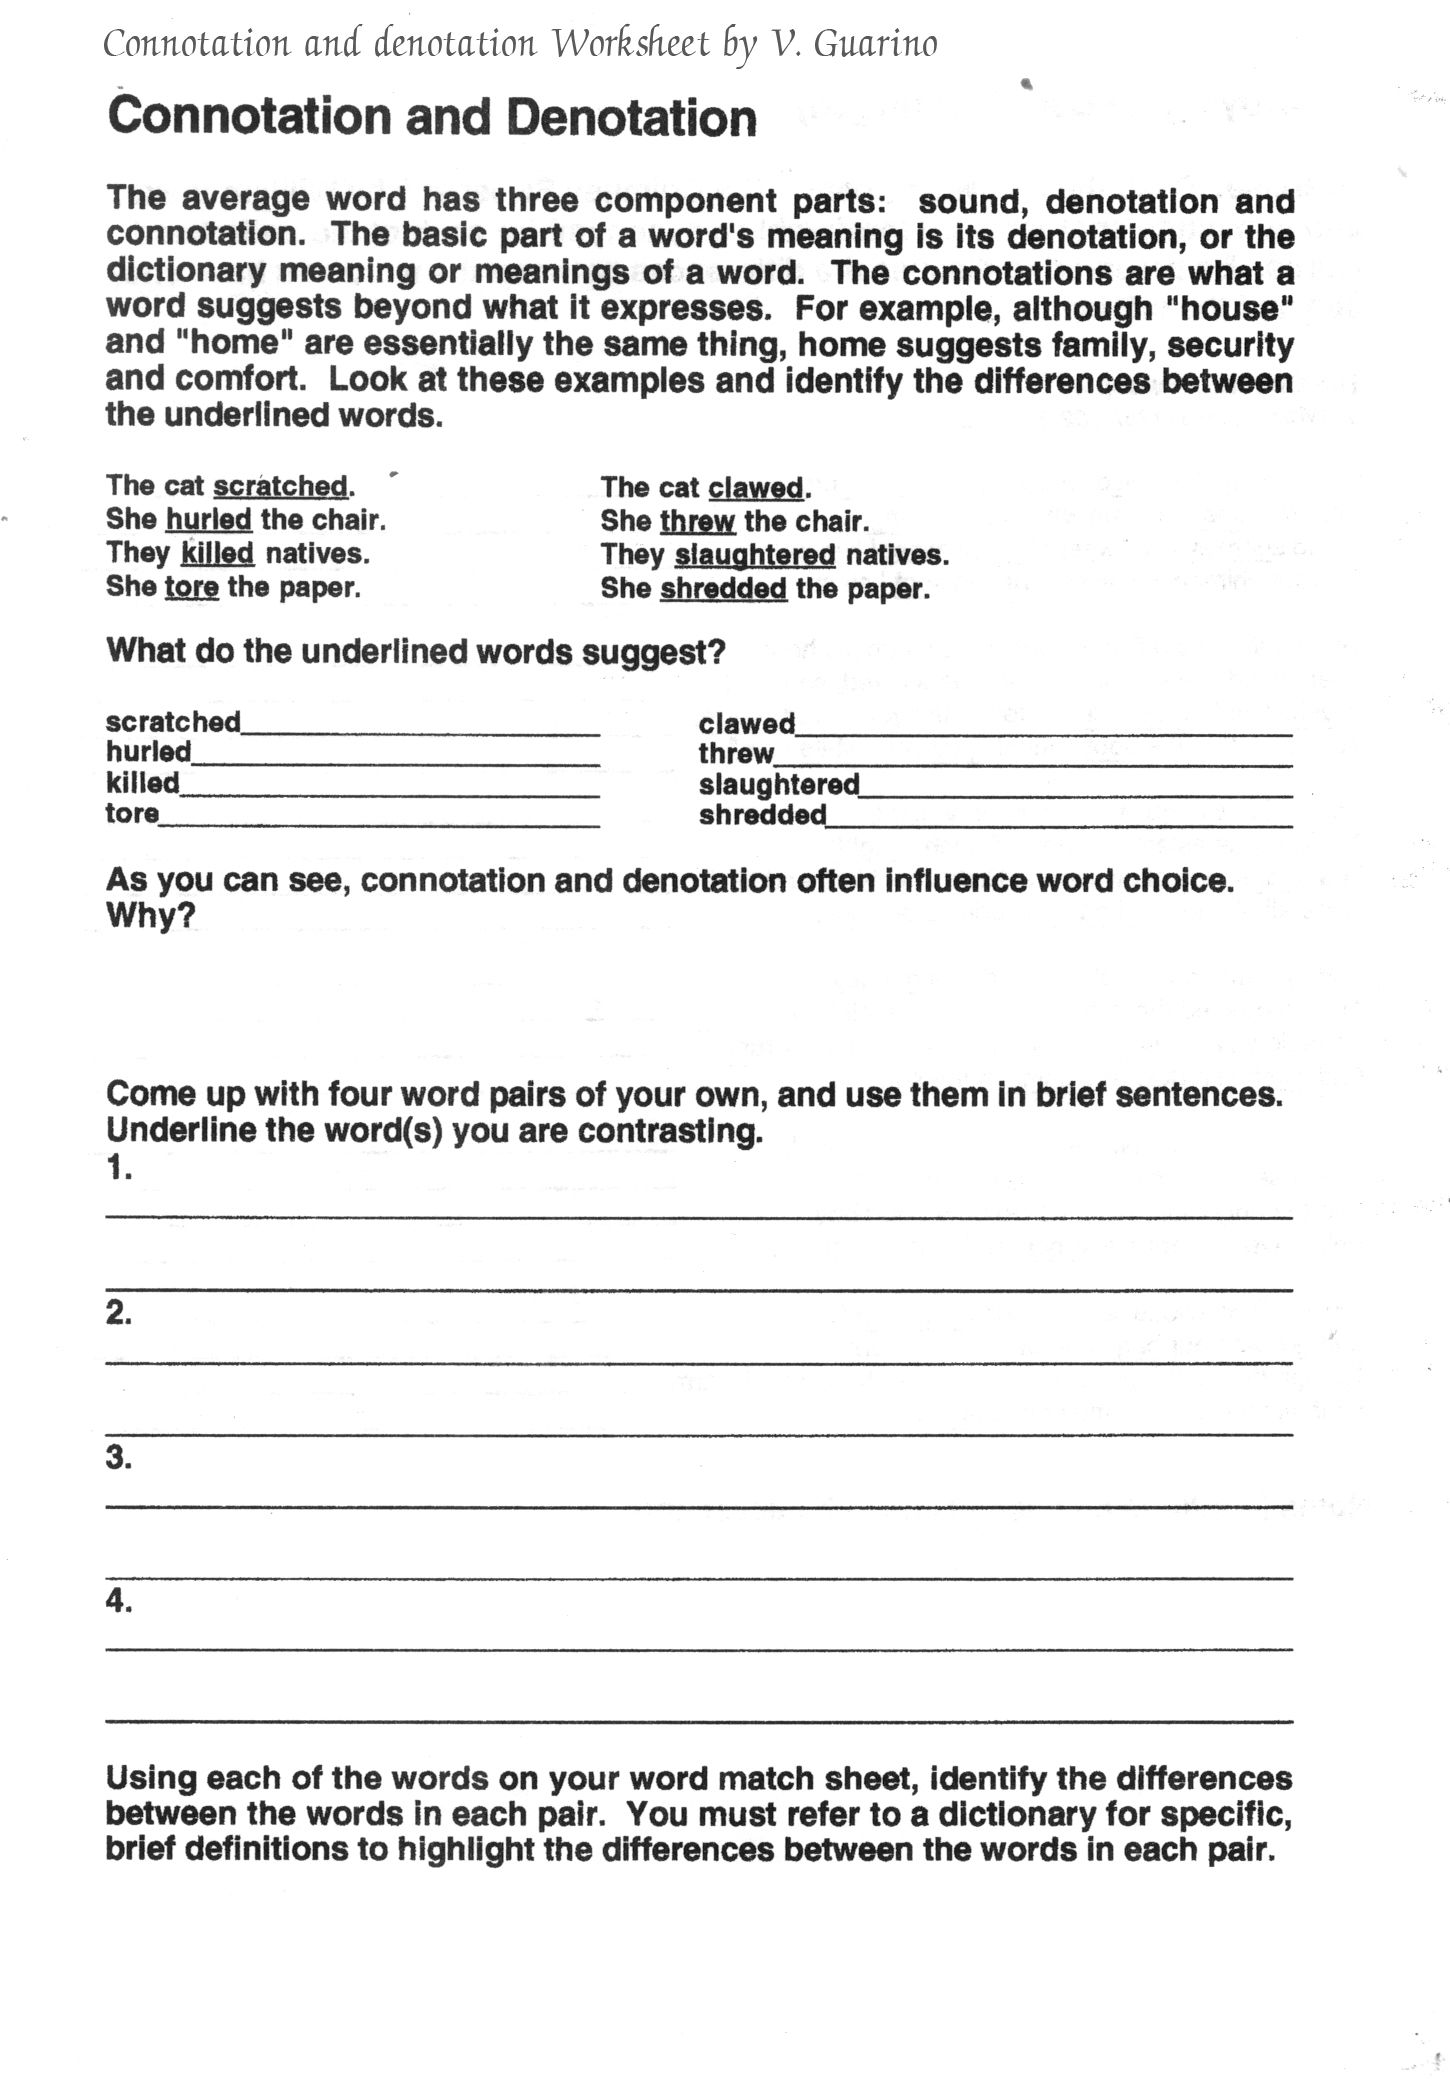 worksheet Connotation Worksheet connotation and denotation worksheets for middle school intrepidpath